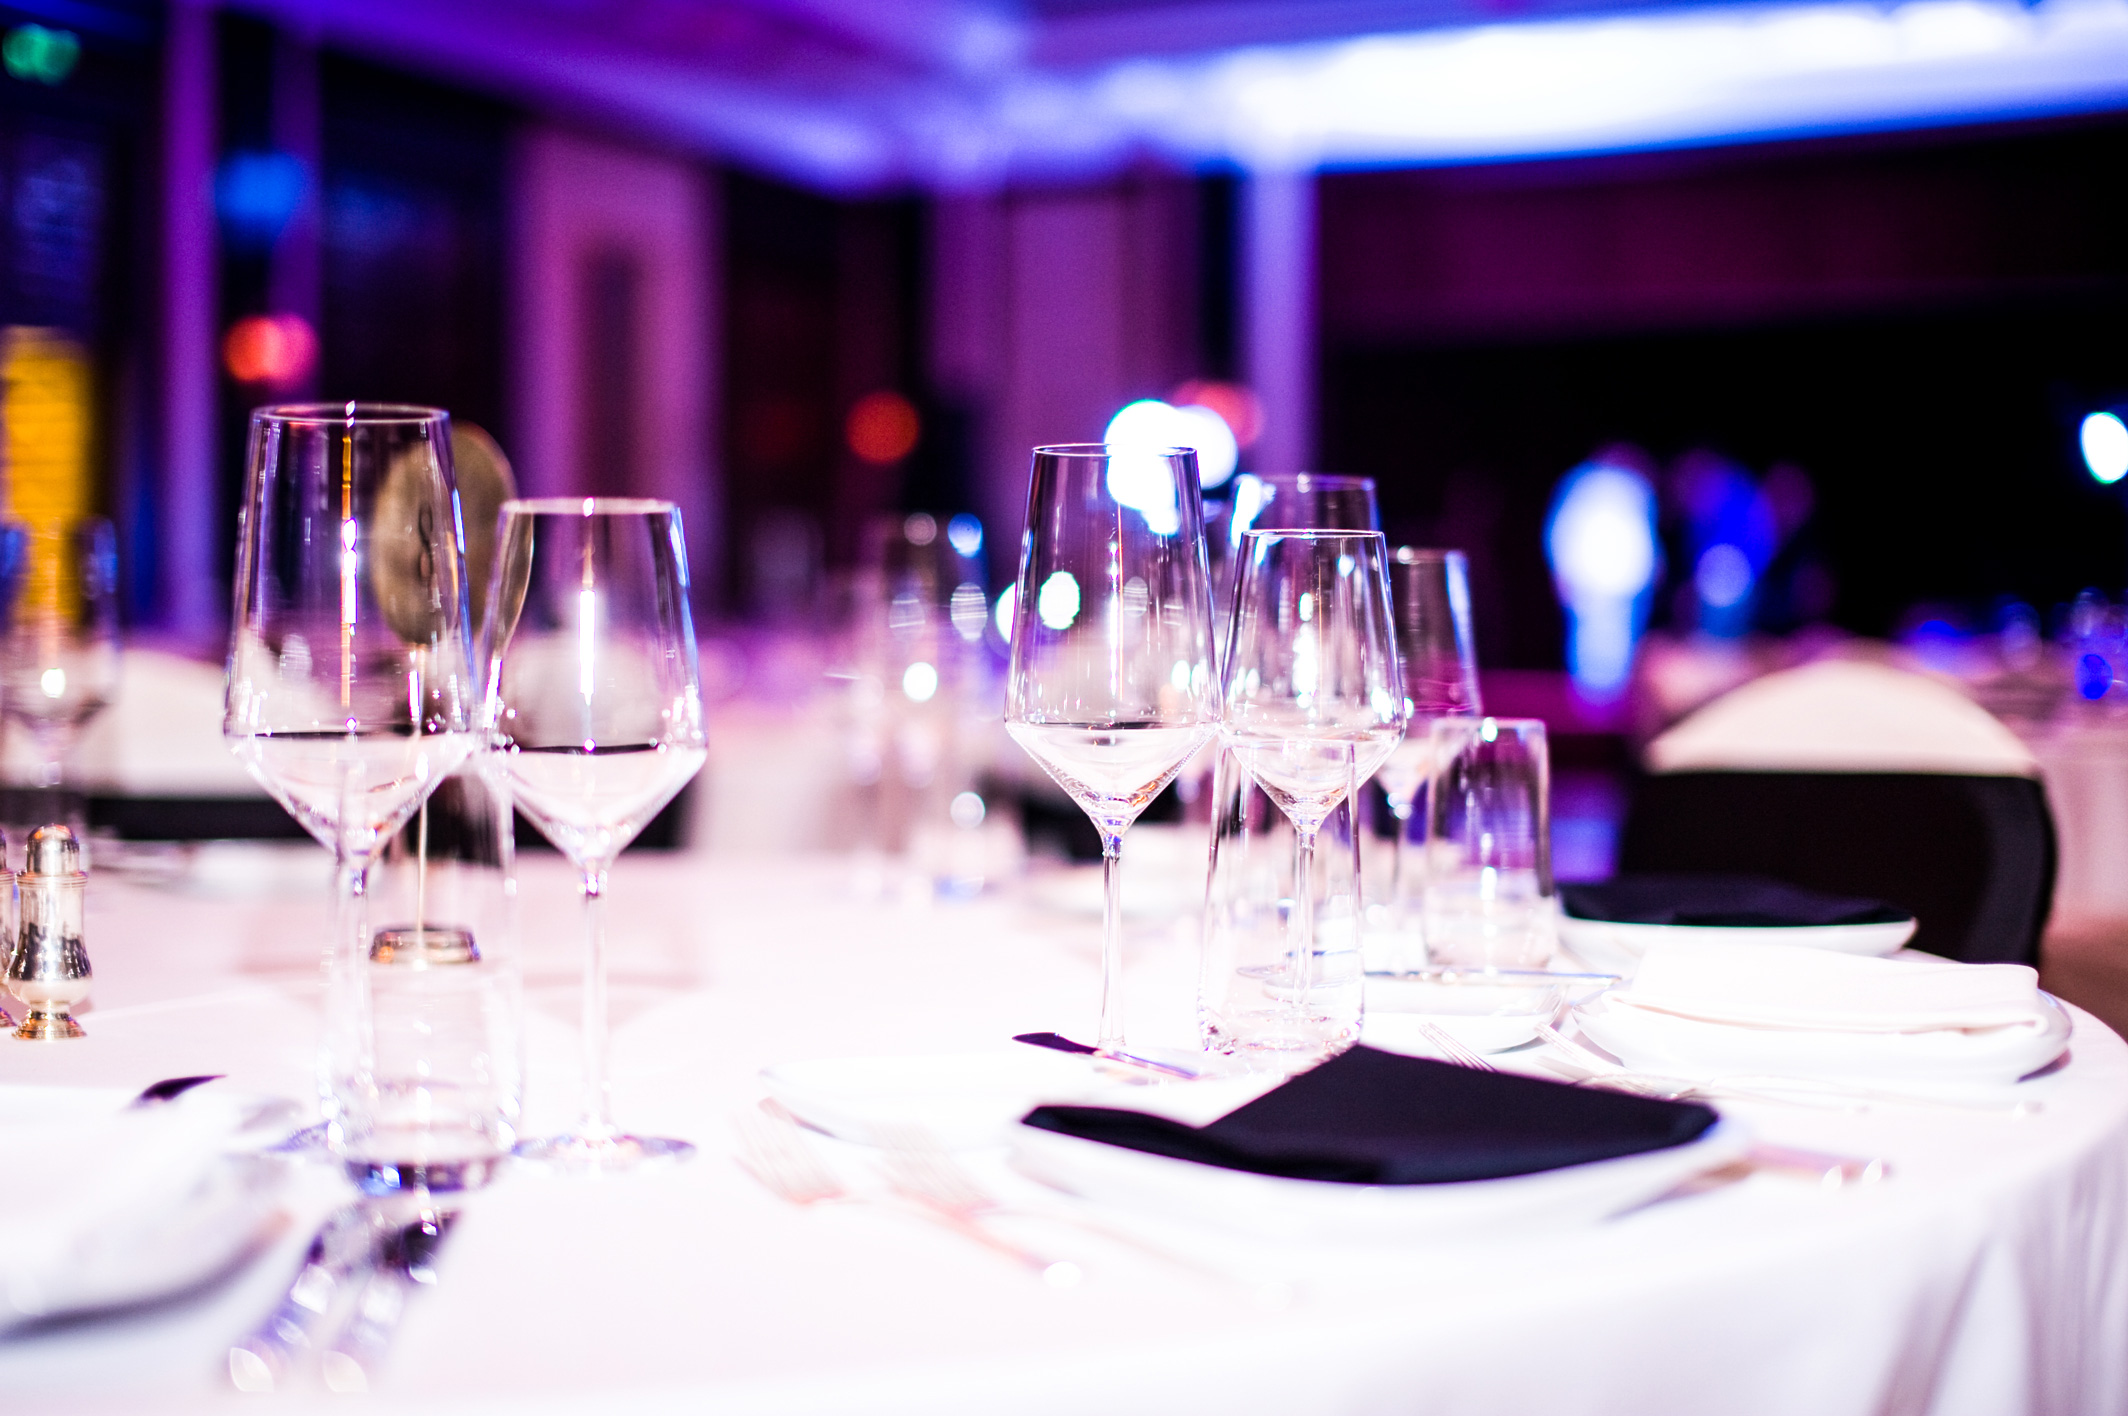 A photograph of a formal dinner table setup